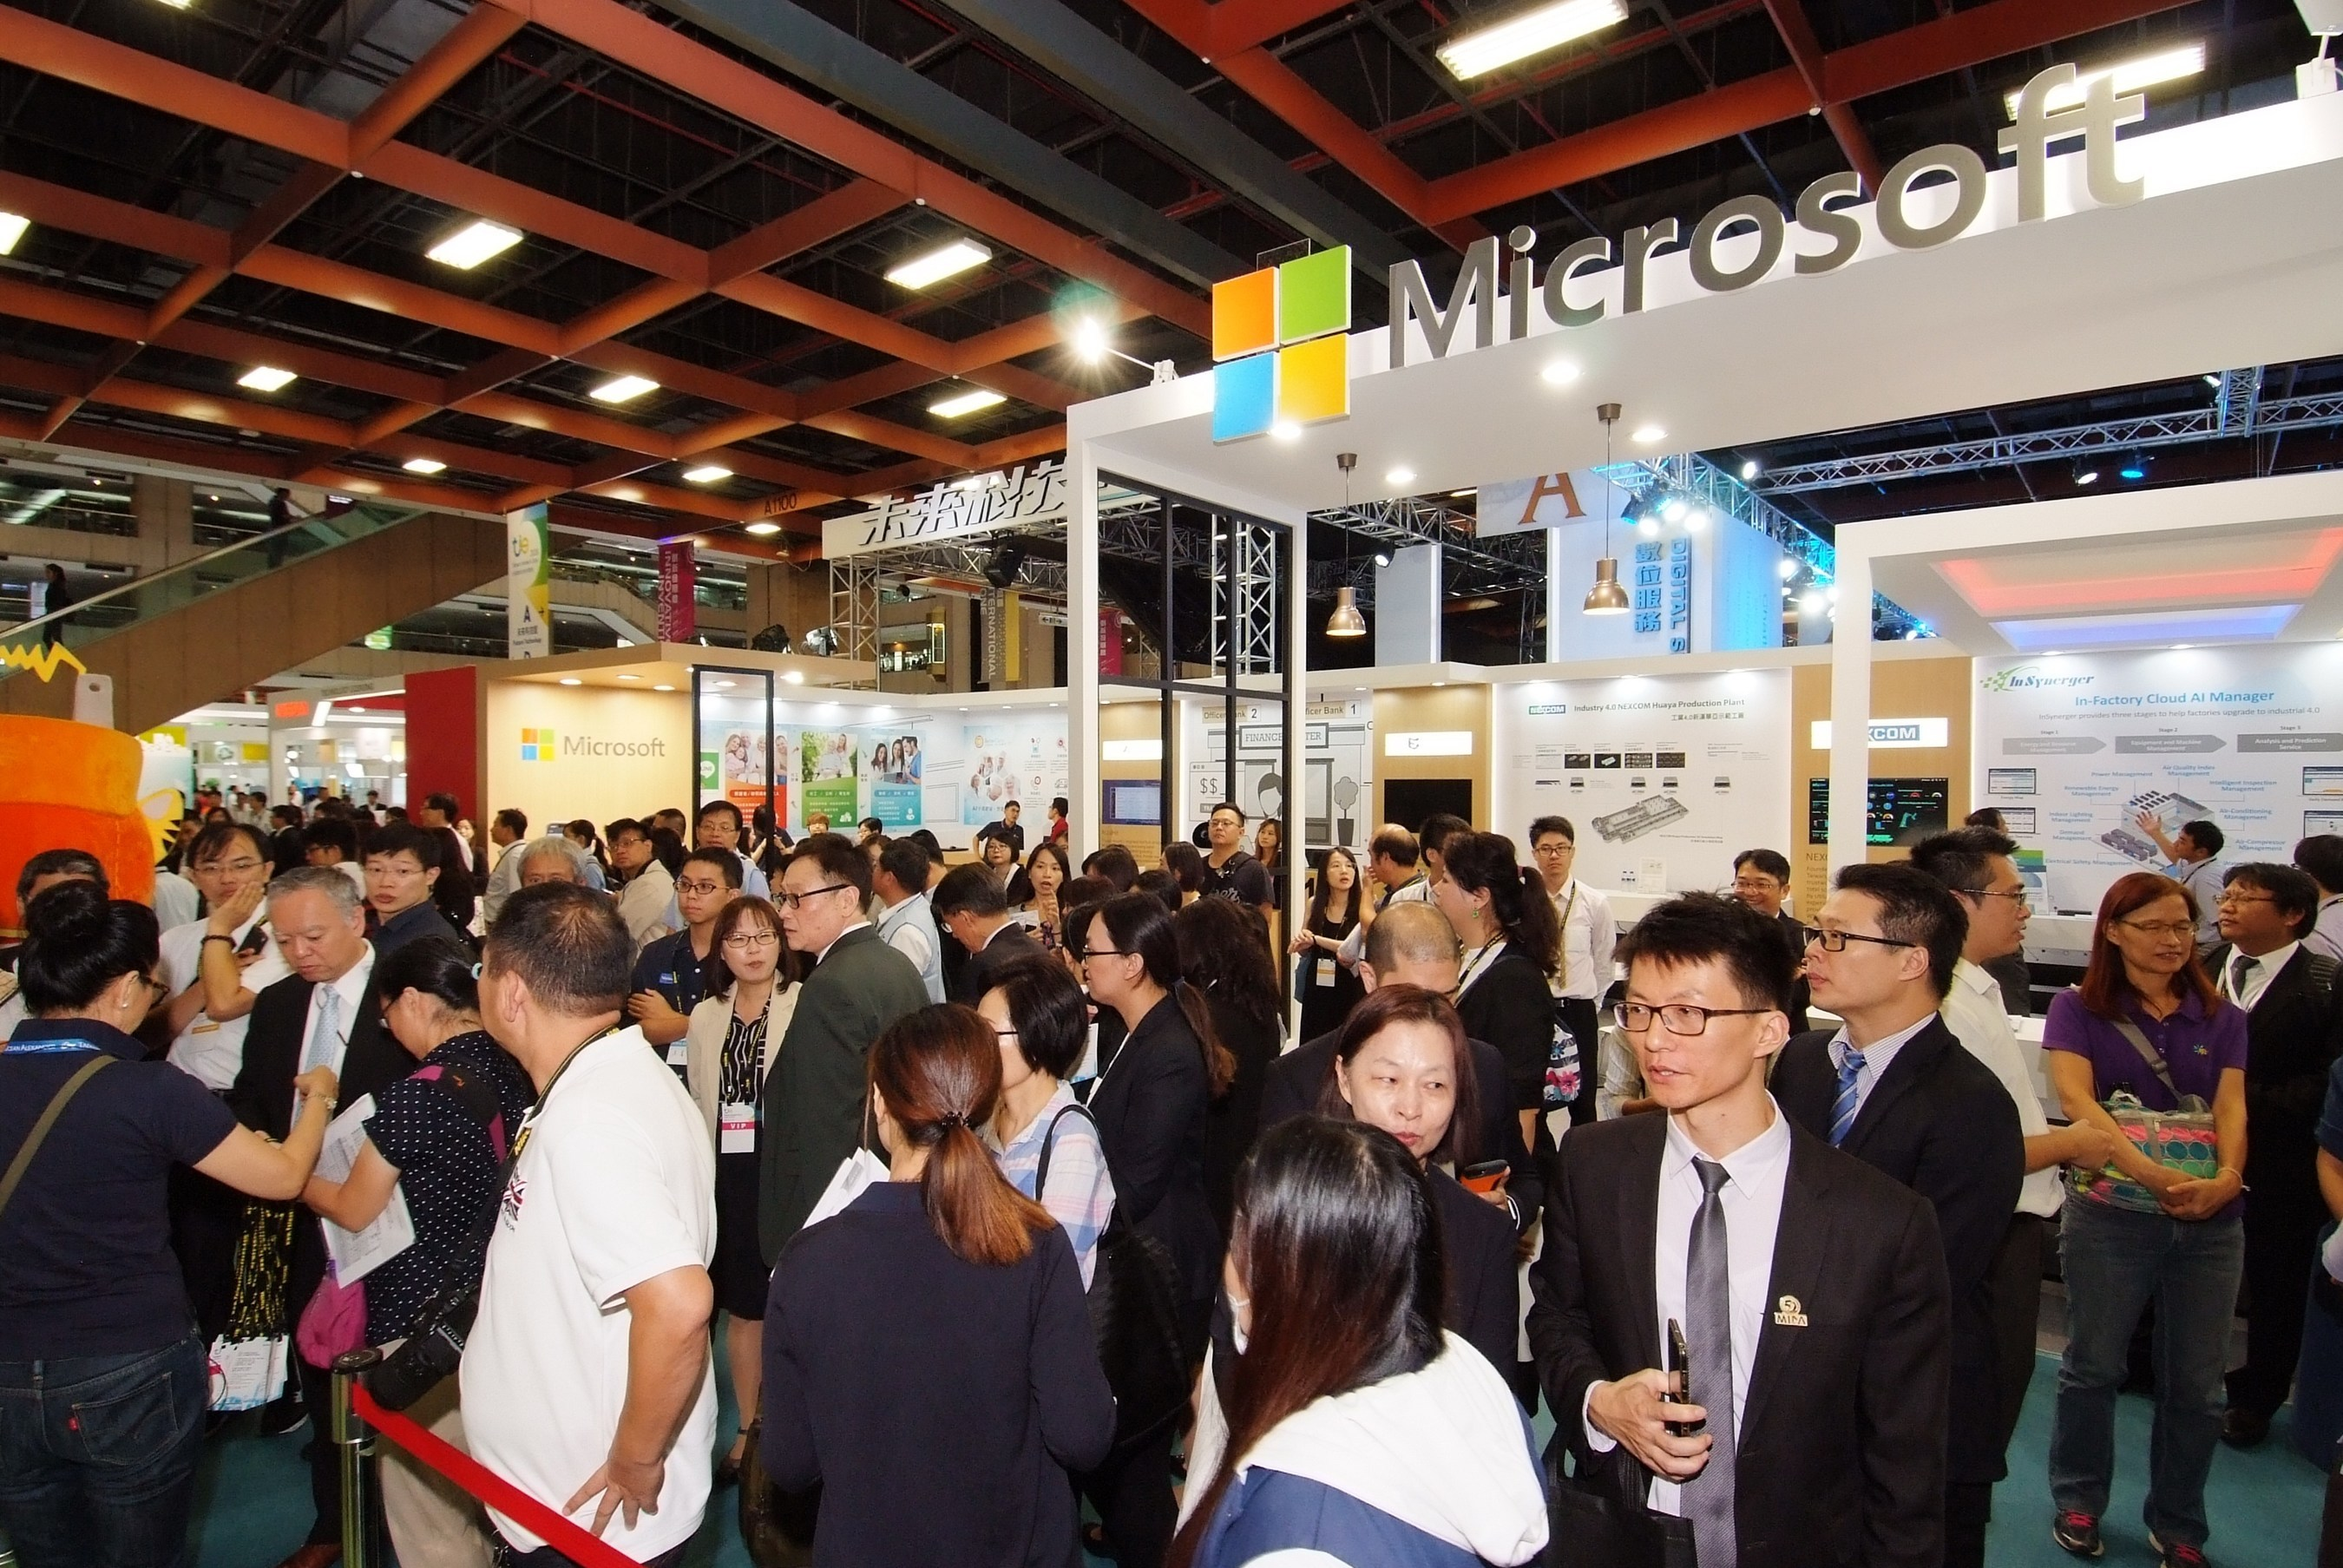 TIE attracted over 45,000 visitors to engage in technology exhibitions organized by domestic and foreign companies.